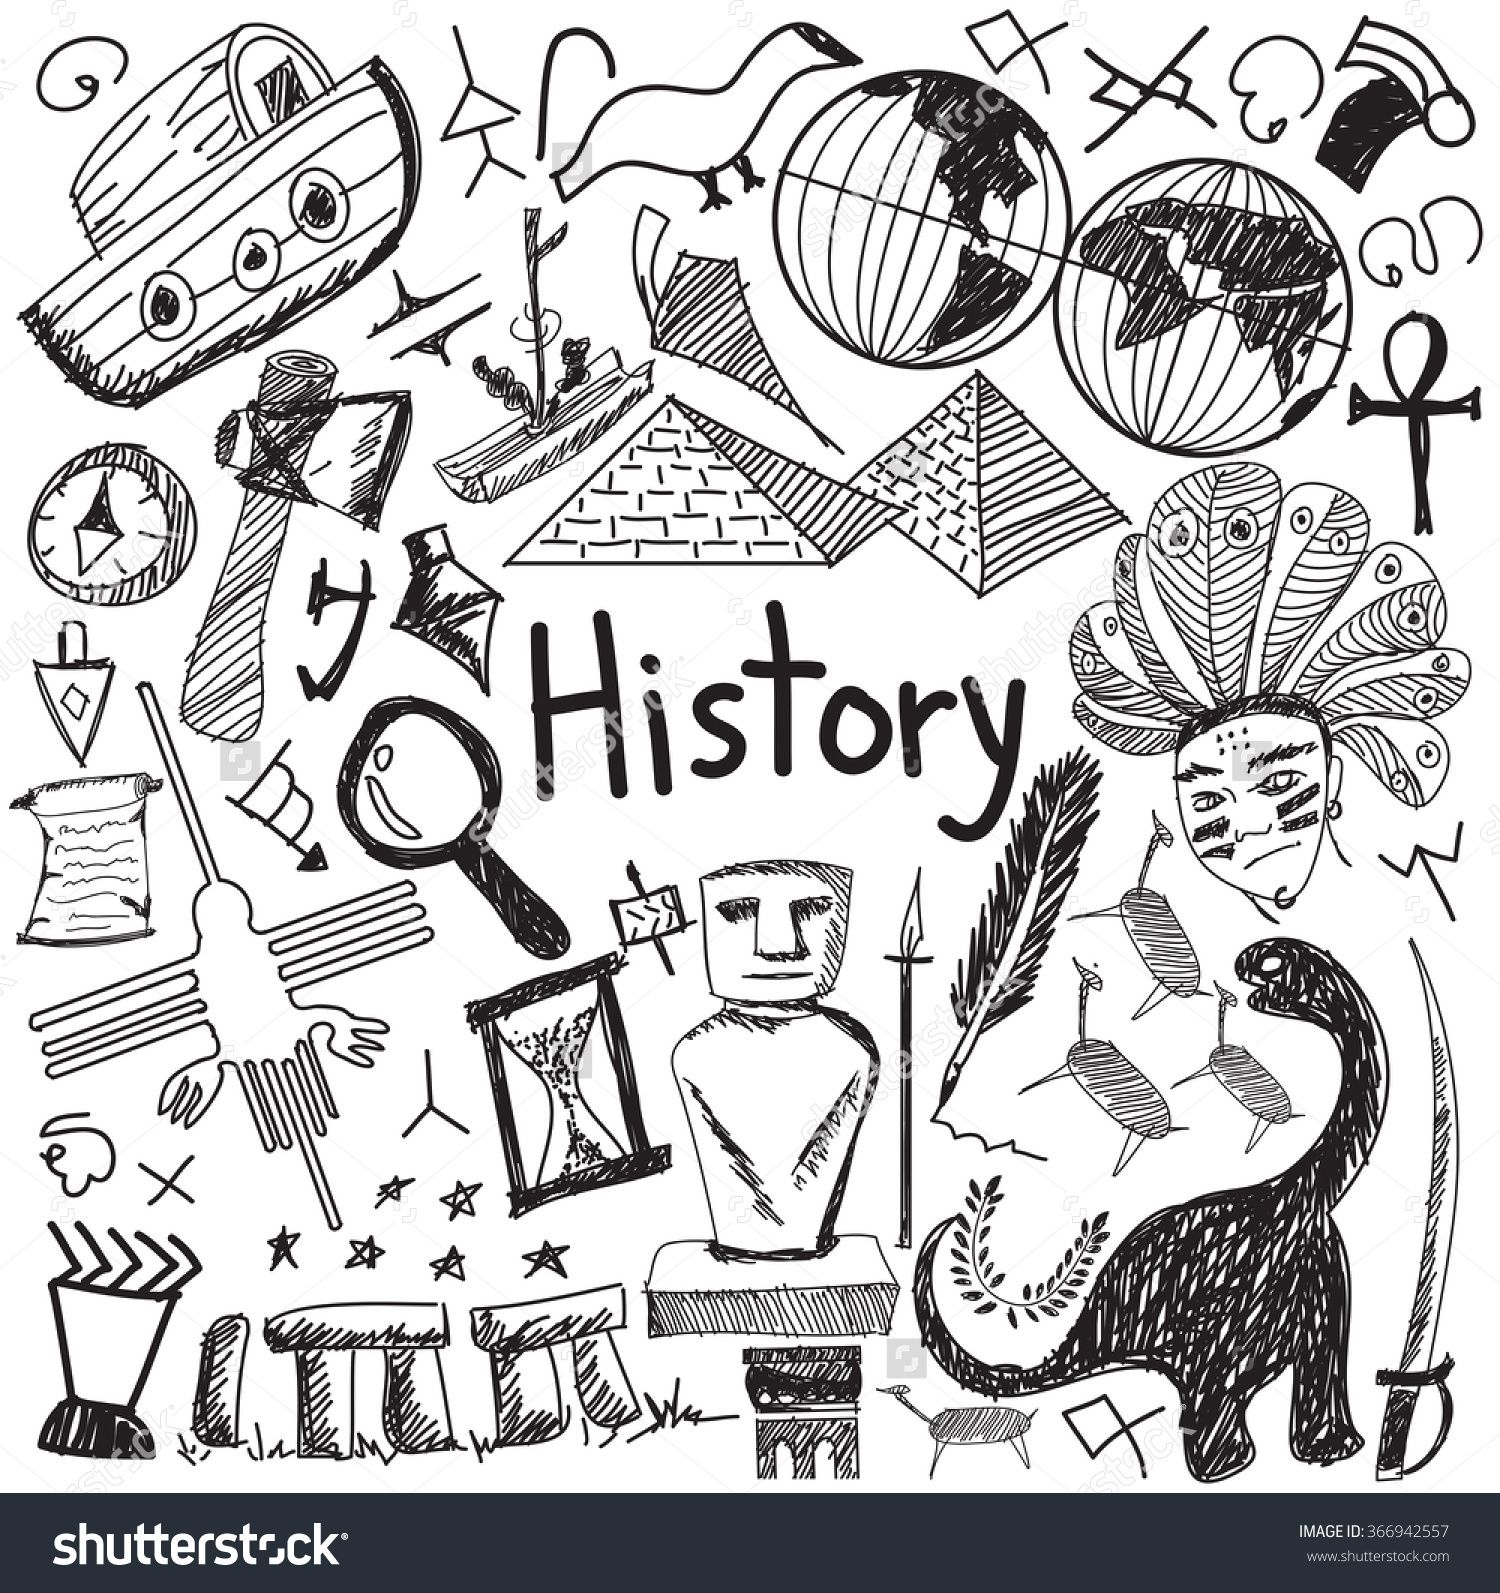 History education subject handwriting doodle icon of